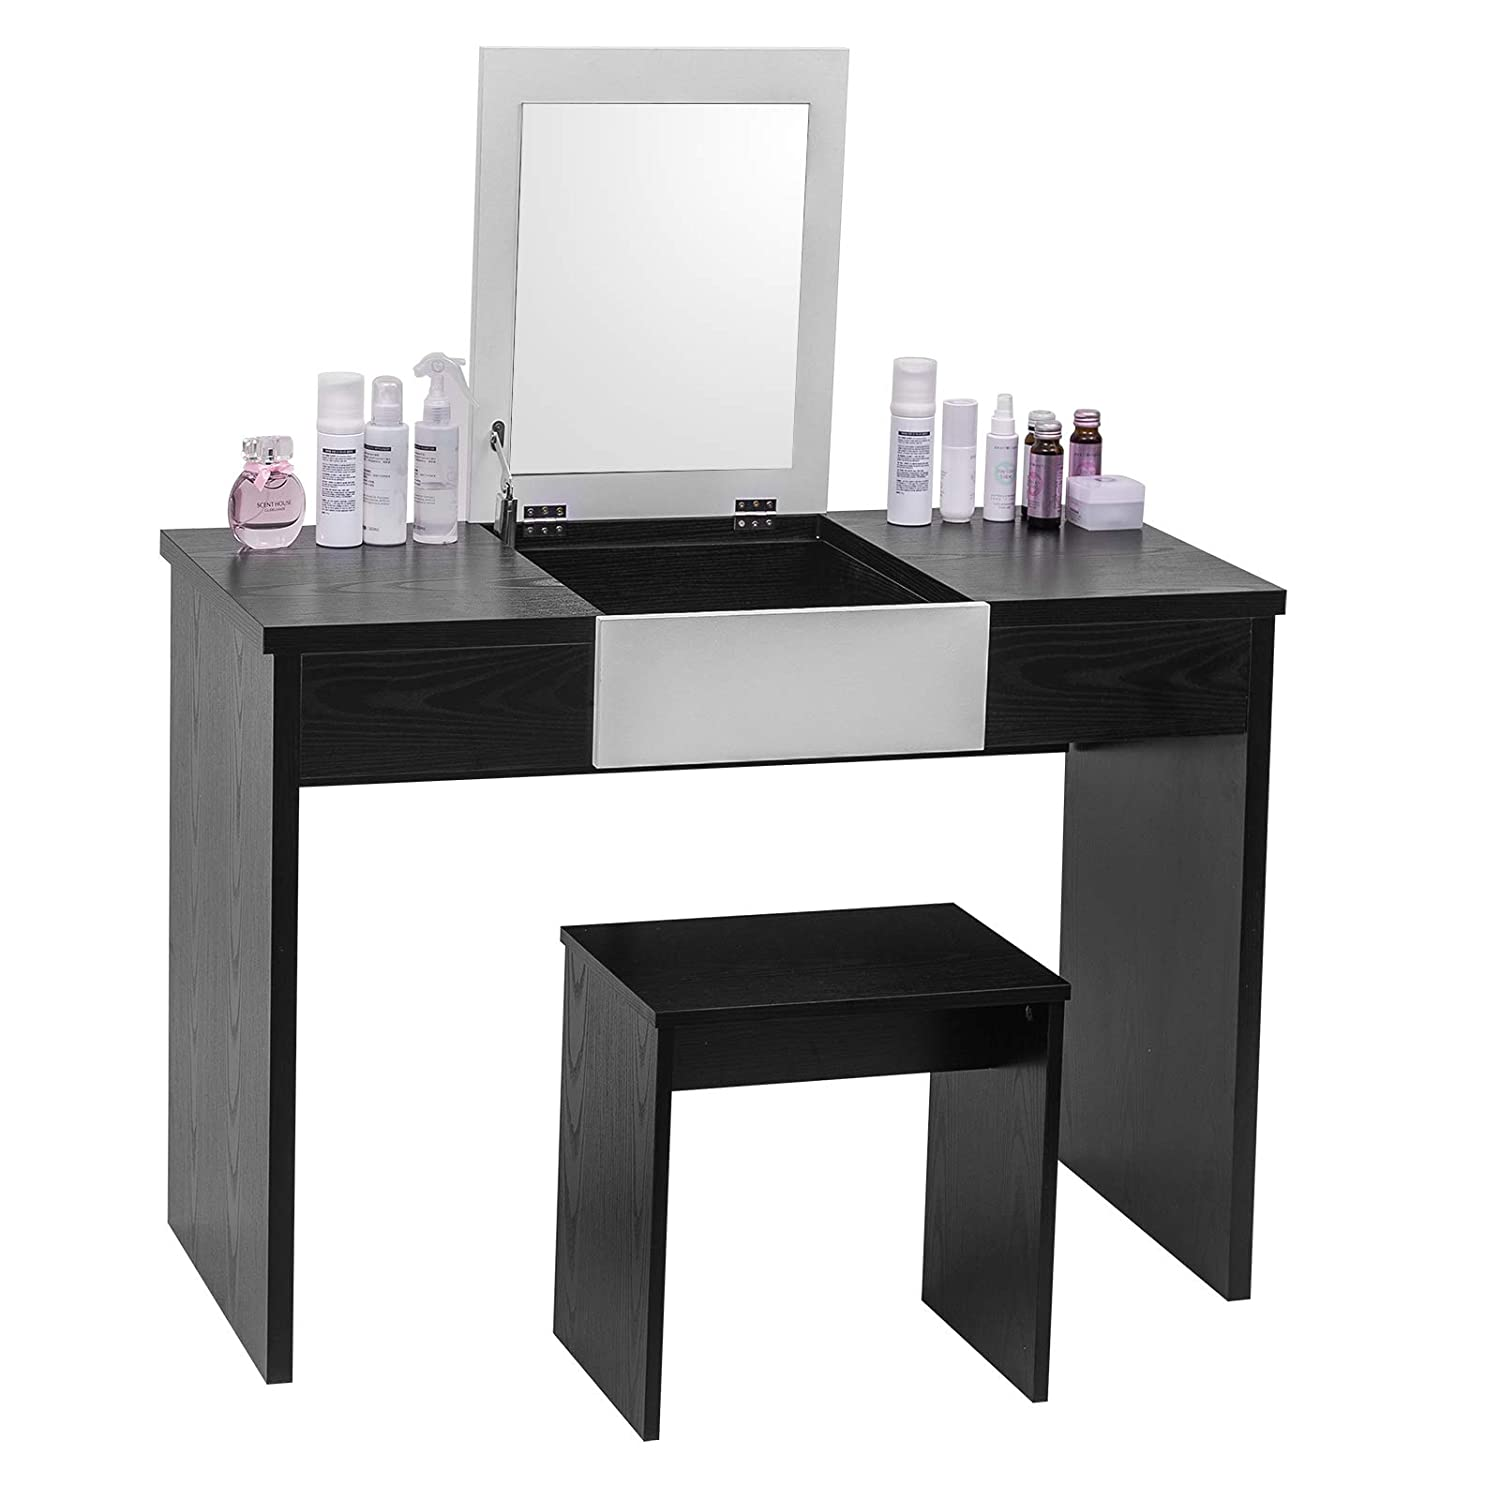 wholesale dealer 3412b b7812 WOLTU Dressing Table Black+White with a Foldable Mirror Makeup Vanity Table  Bedroom Dresser Set with Dressing Stool MB6048szw